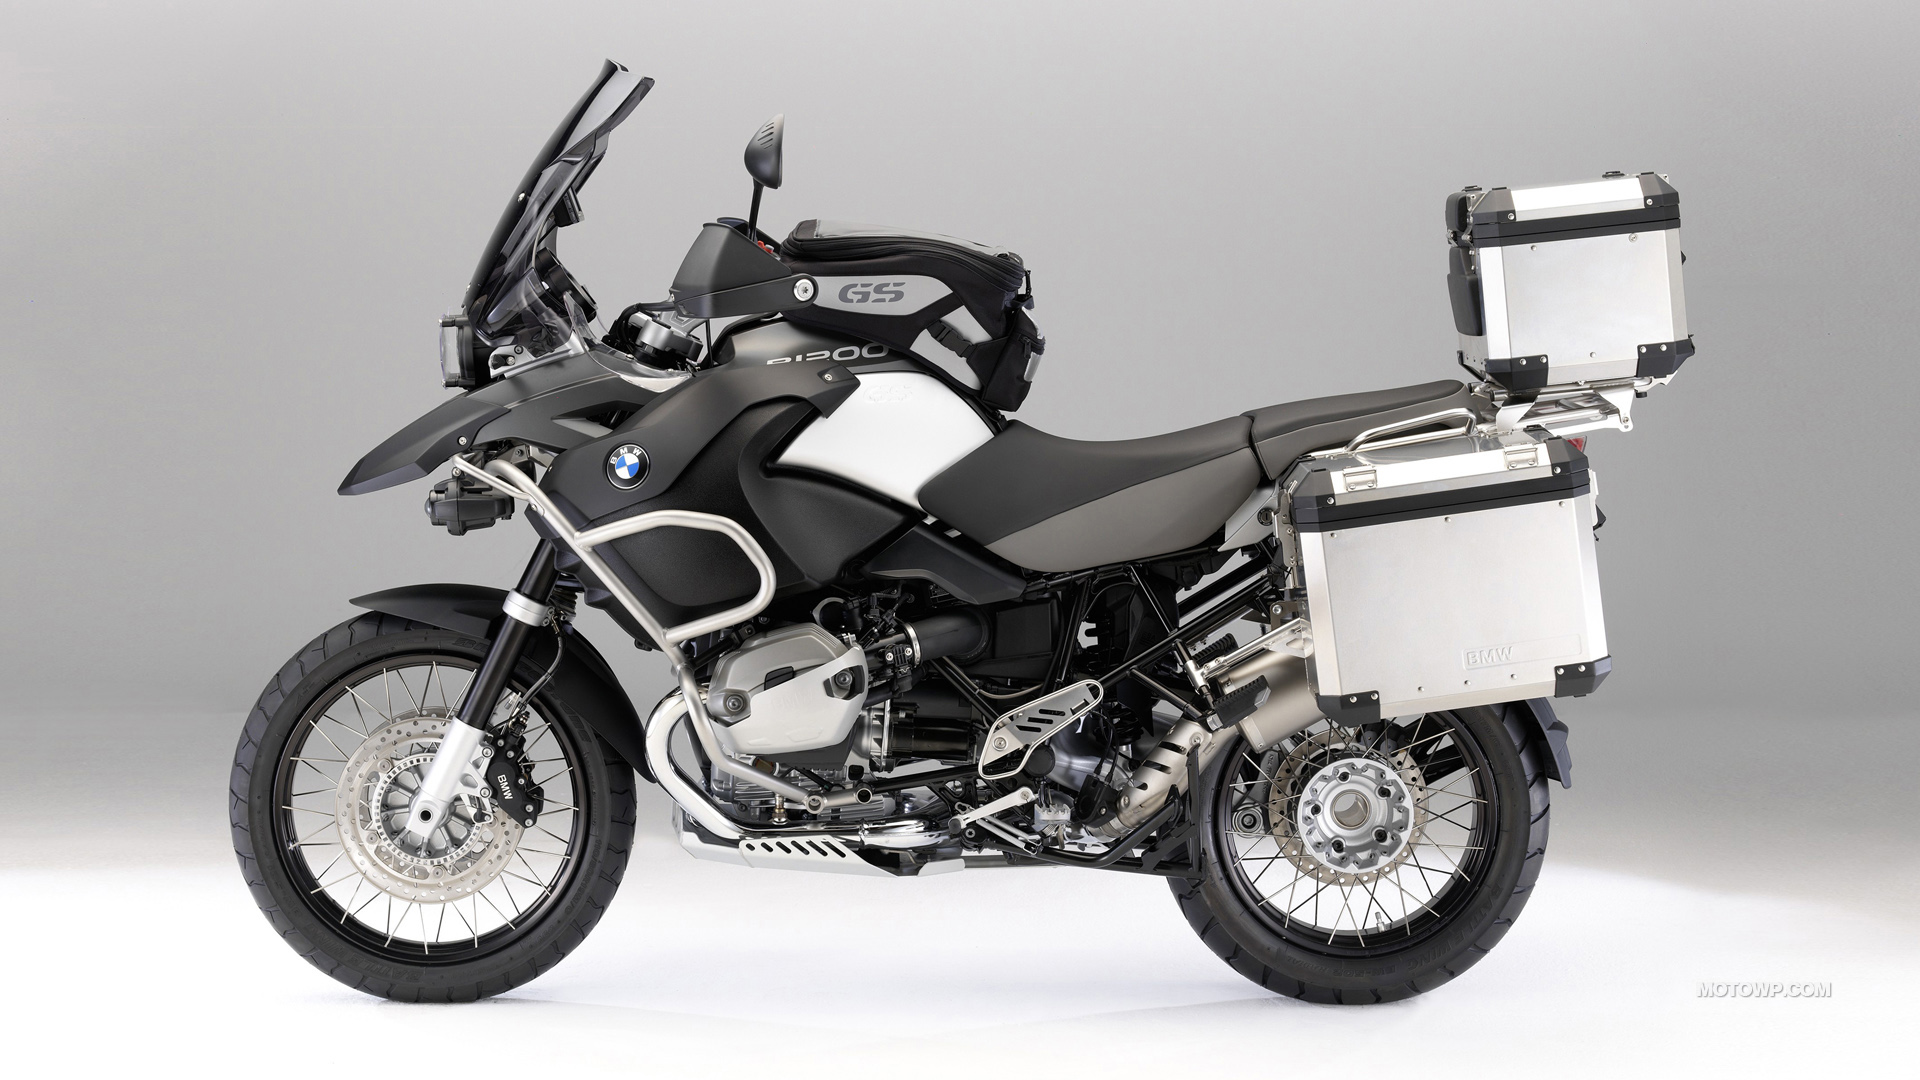 BMW R1200GS 2009 images #8199